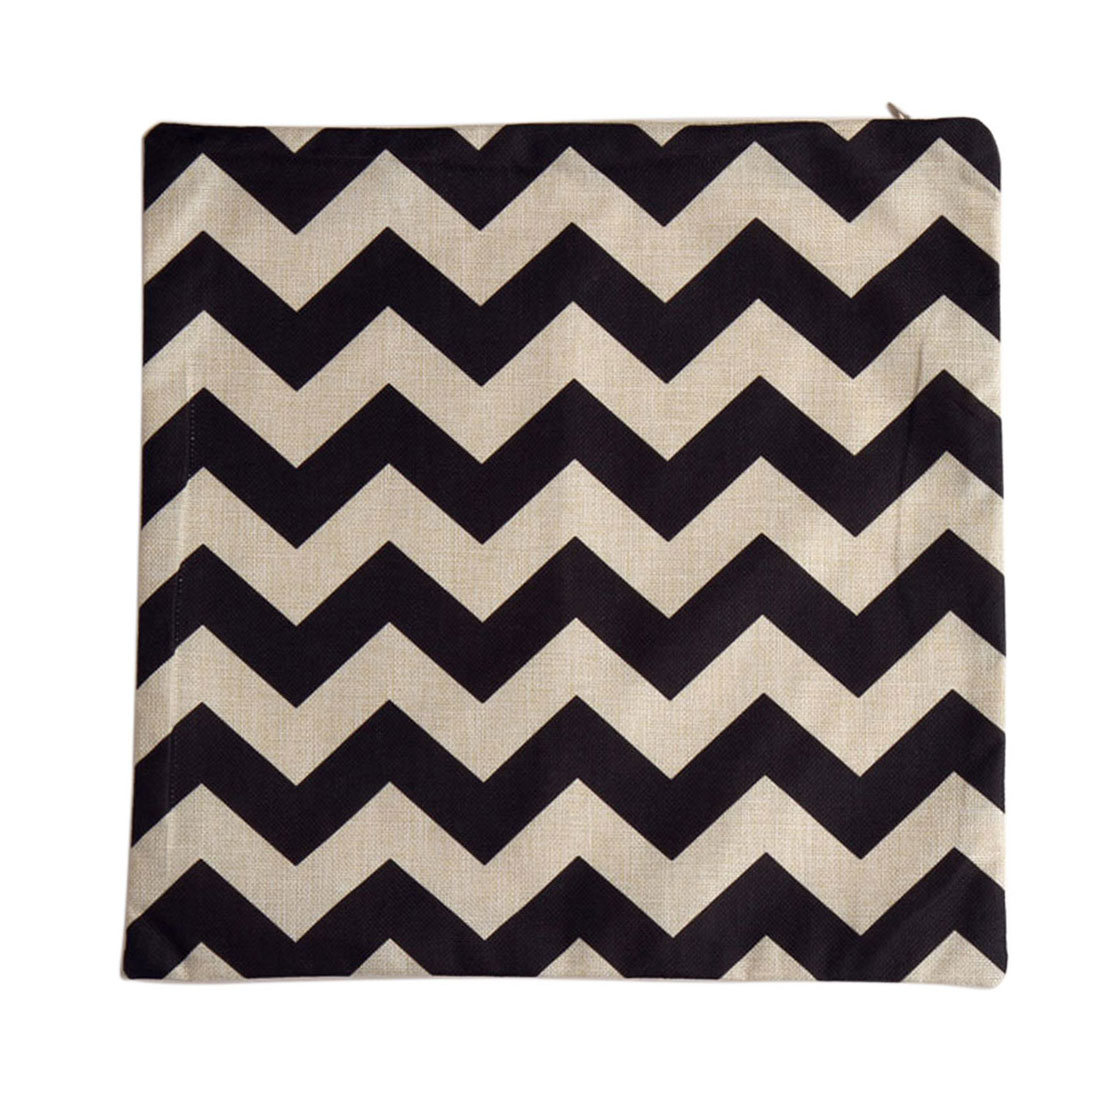 Piccocasa Zigzag Printed Cushion Pillow Cover Case Black Beige 45 x 45cm